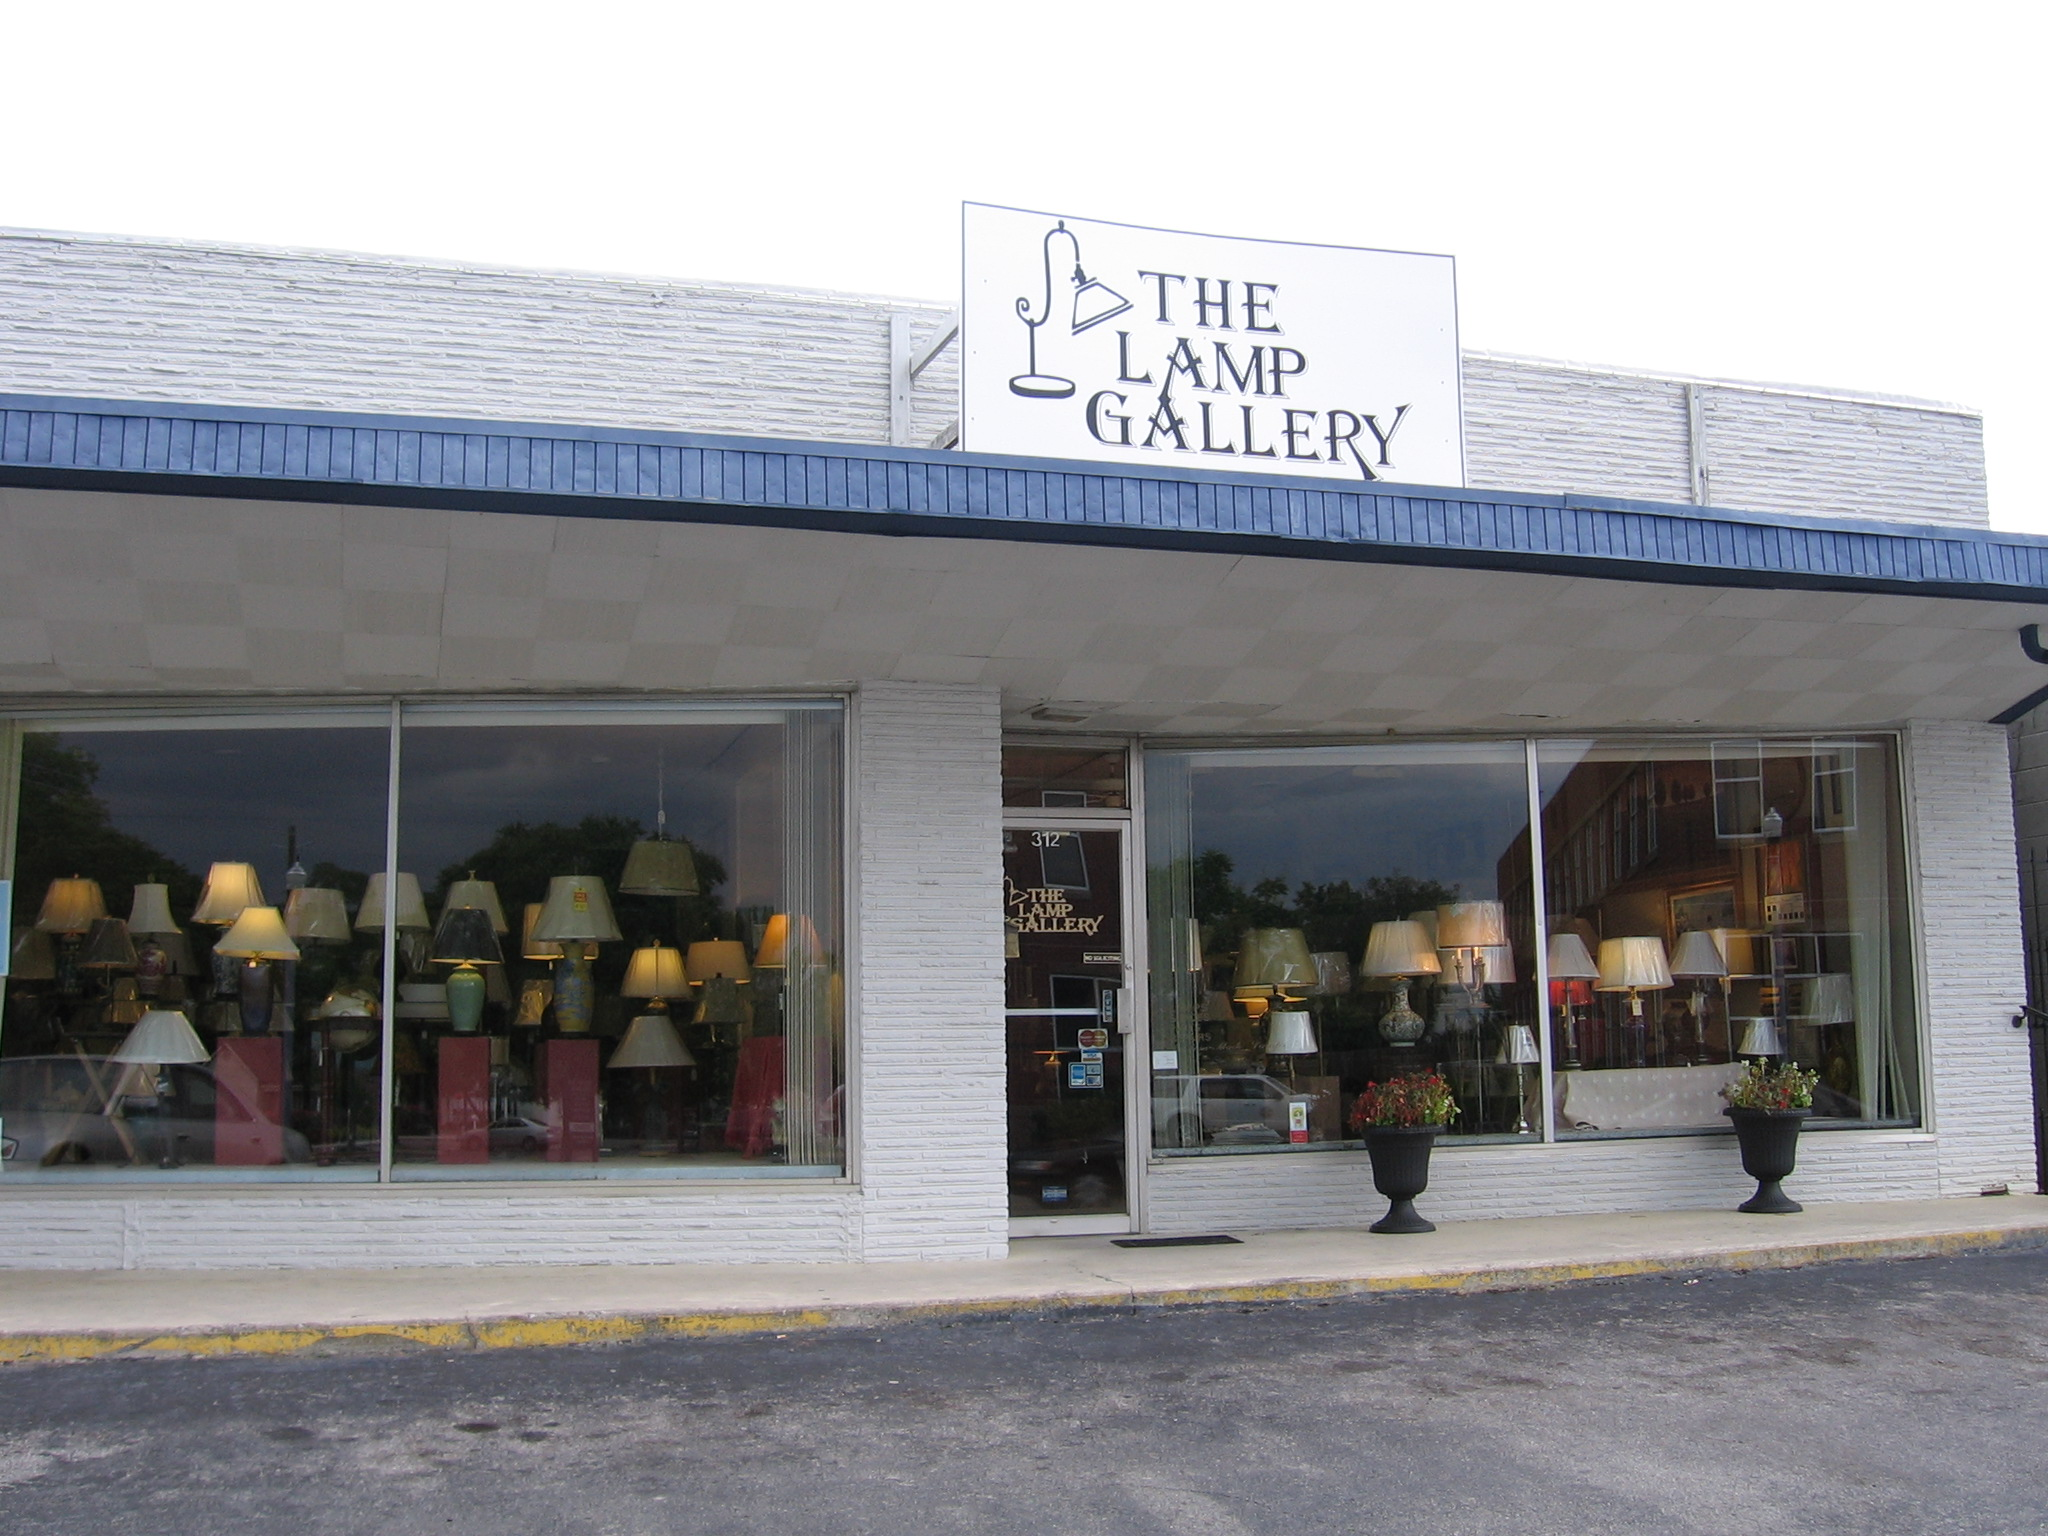 The lamp gallery